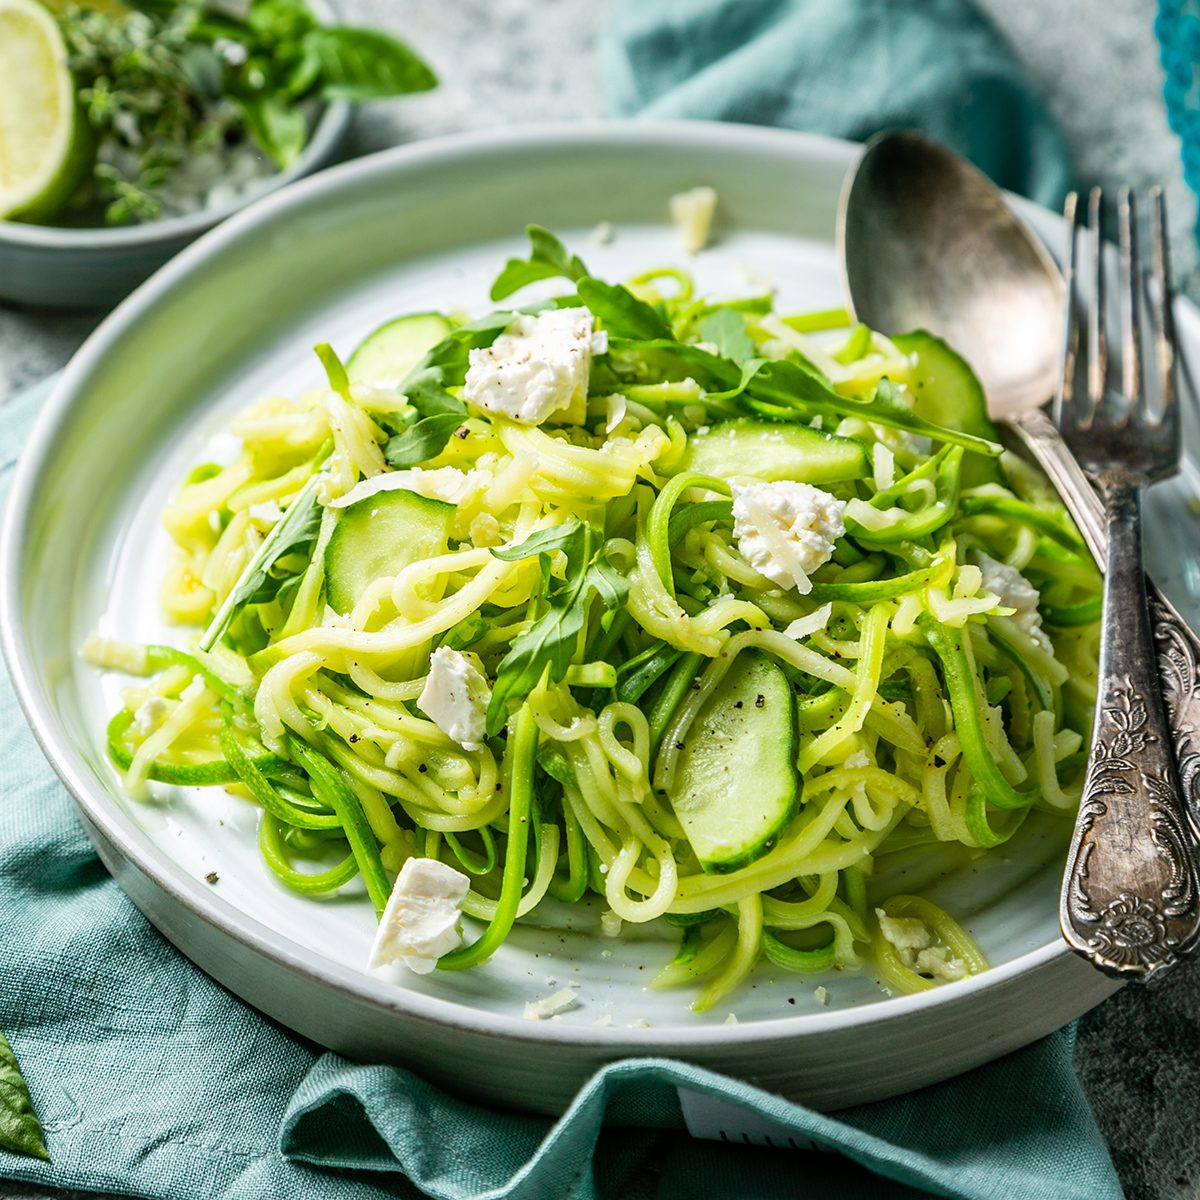 Zucchini noodles with cucumber, feta cheese and arugula, rustic background; Shutterstock ID 1220659900; Job (TFH, TOH, RD, BNB, CWM, CM): Taste of Home